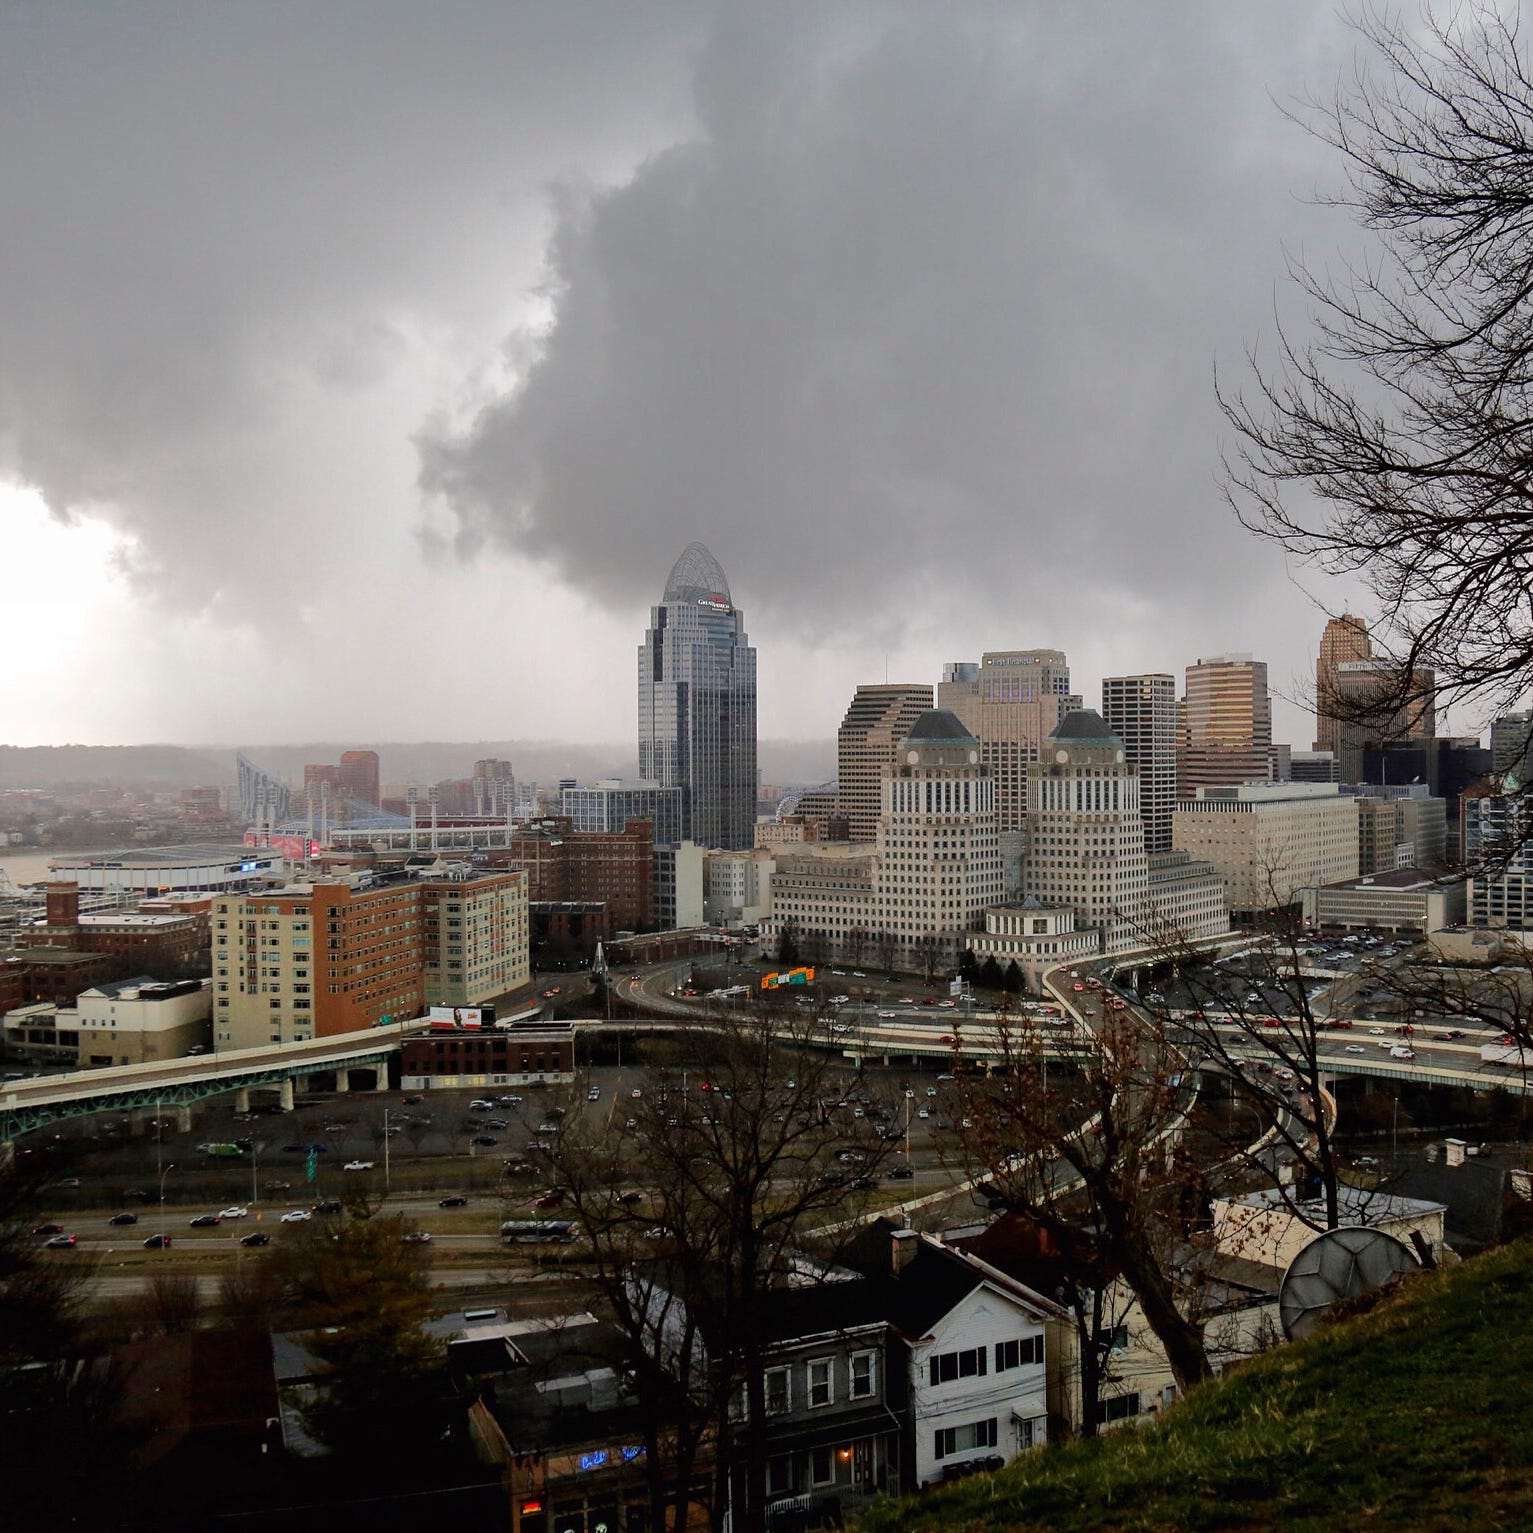 Tornado warning has passed for Cincinnati area, Weather Service says. Thousands without power